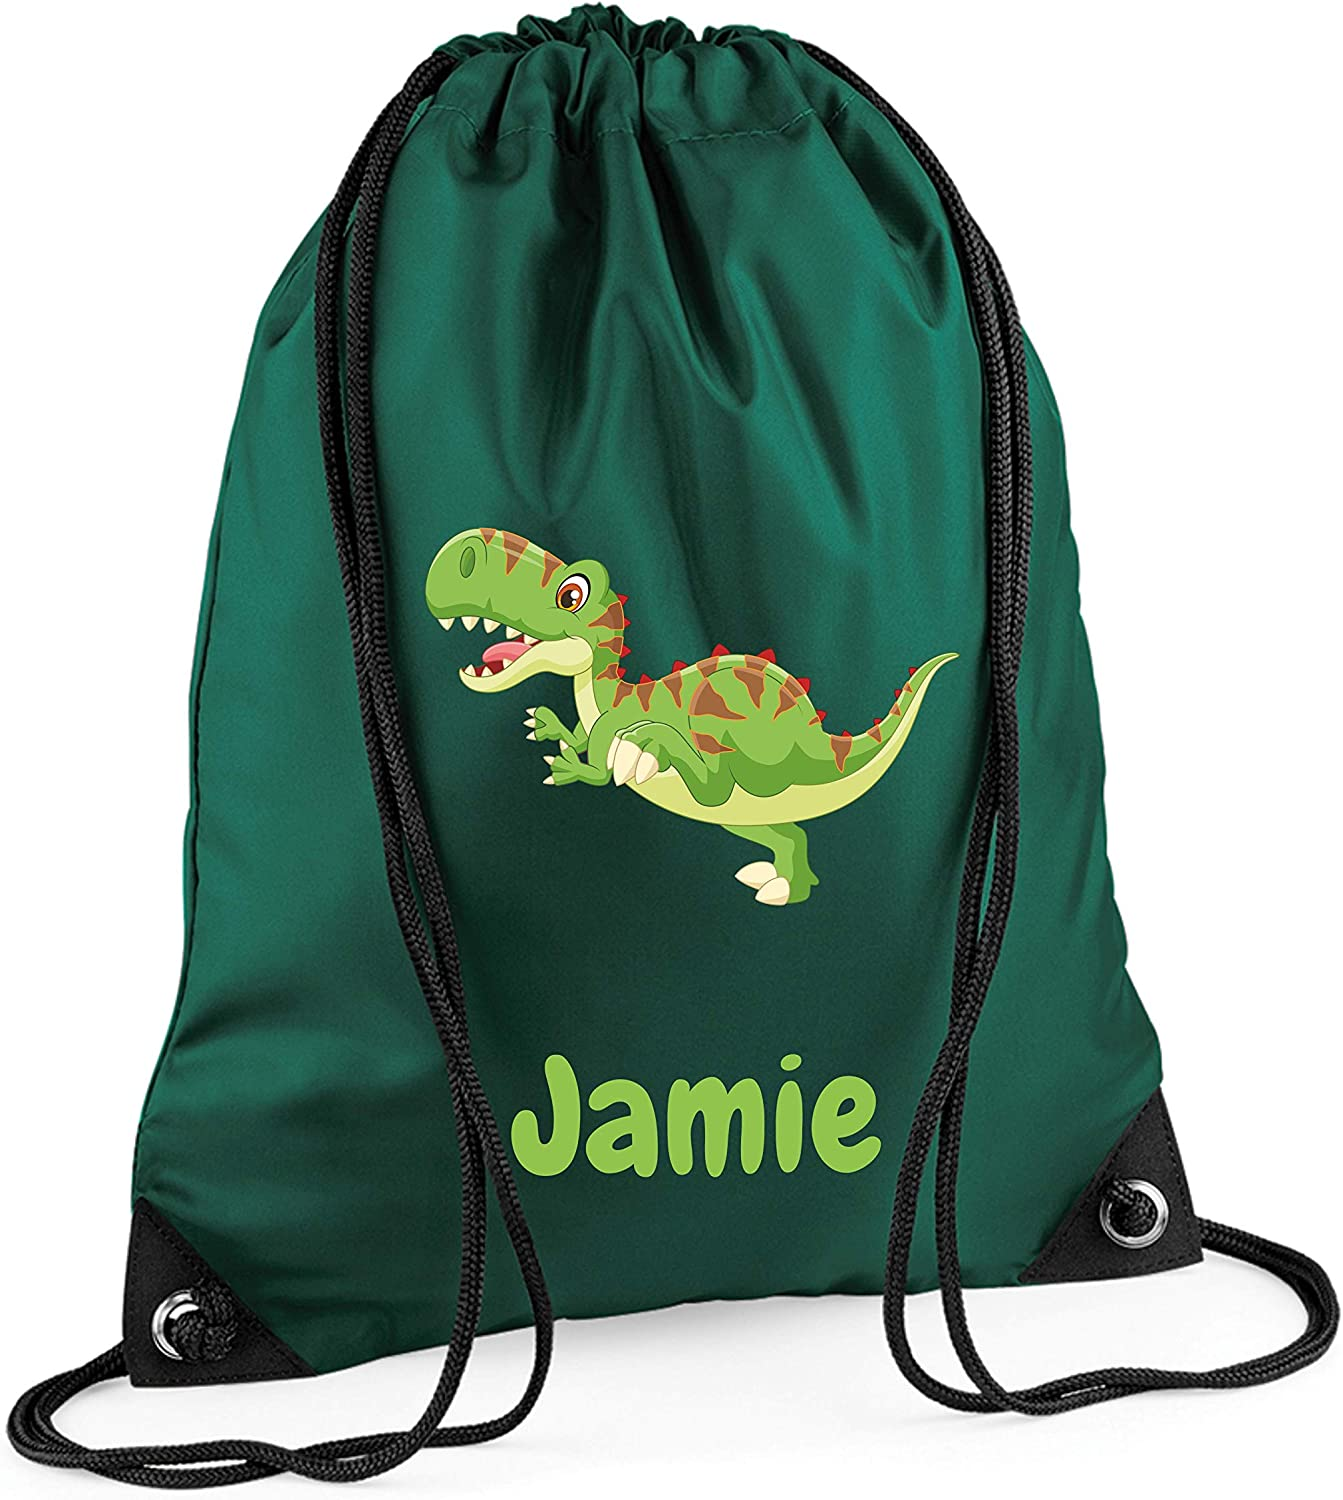 Personalised Name Drawstring DINOSAUR Bag School Club PE Gym Custom Sport